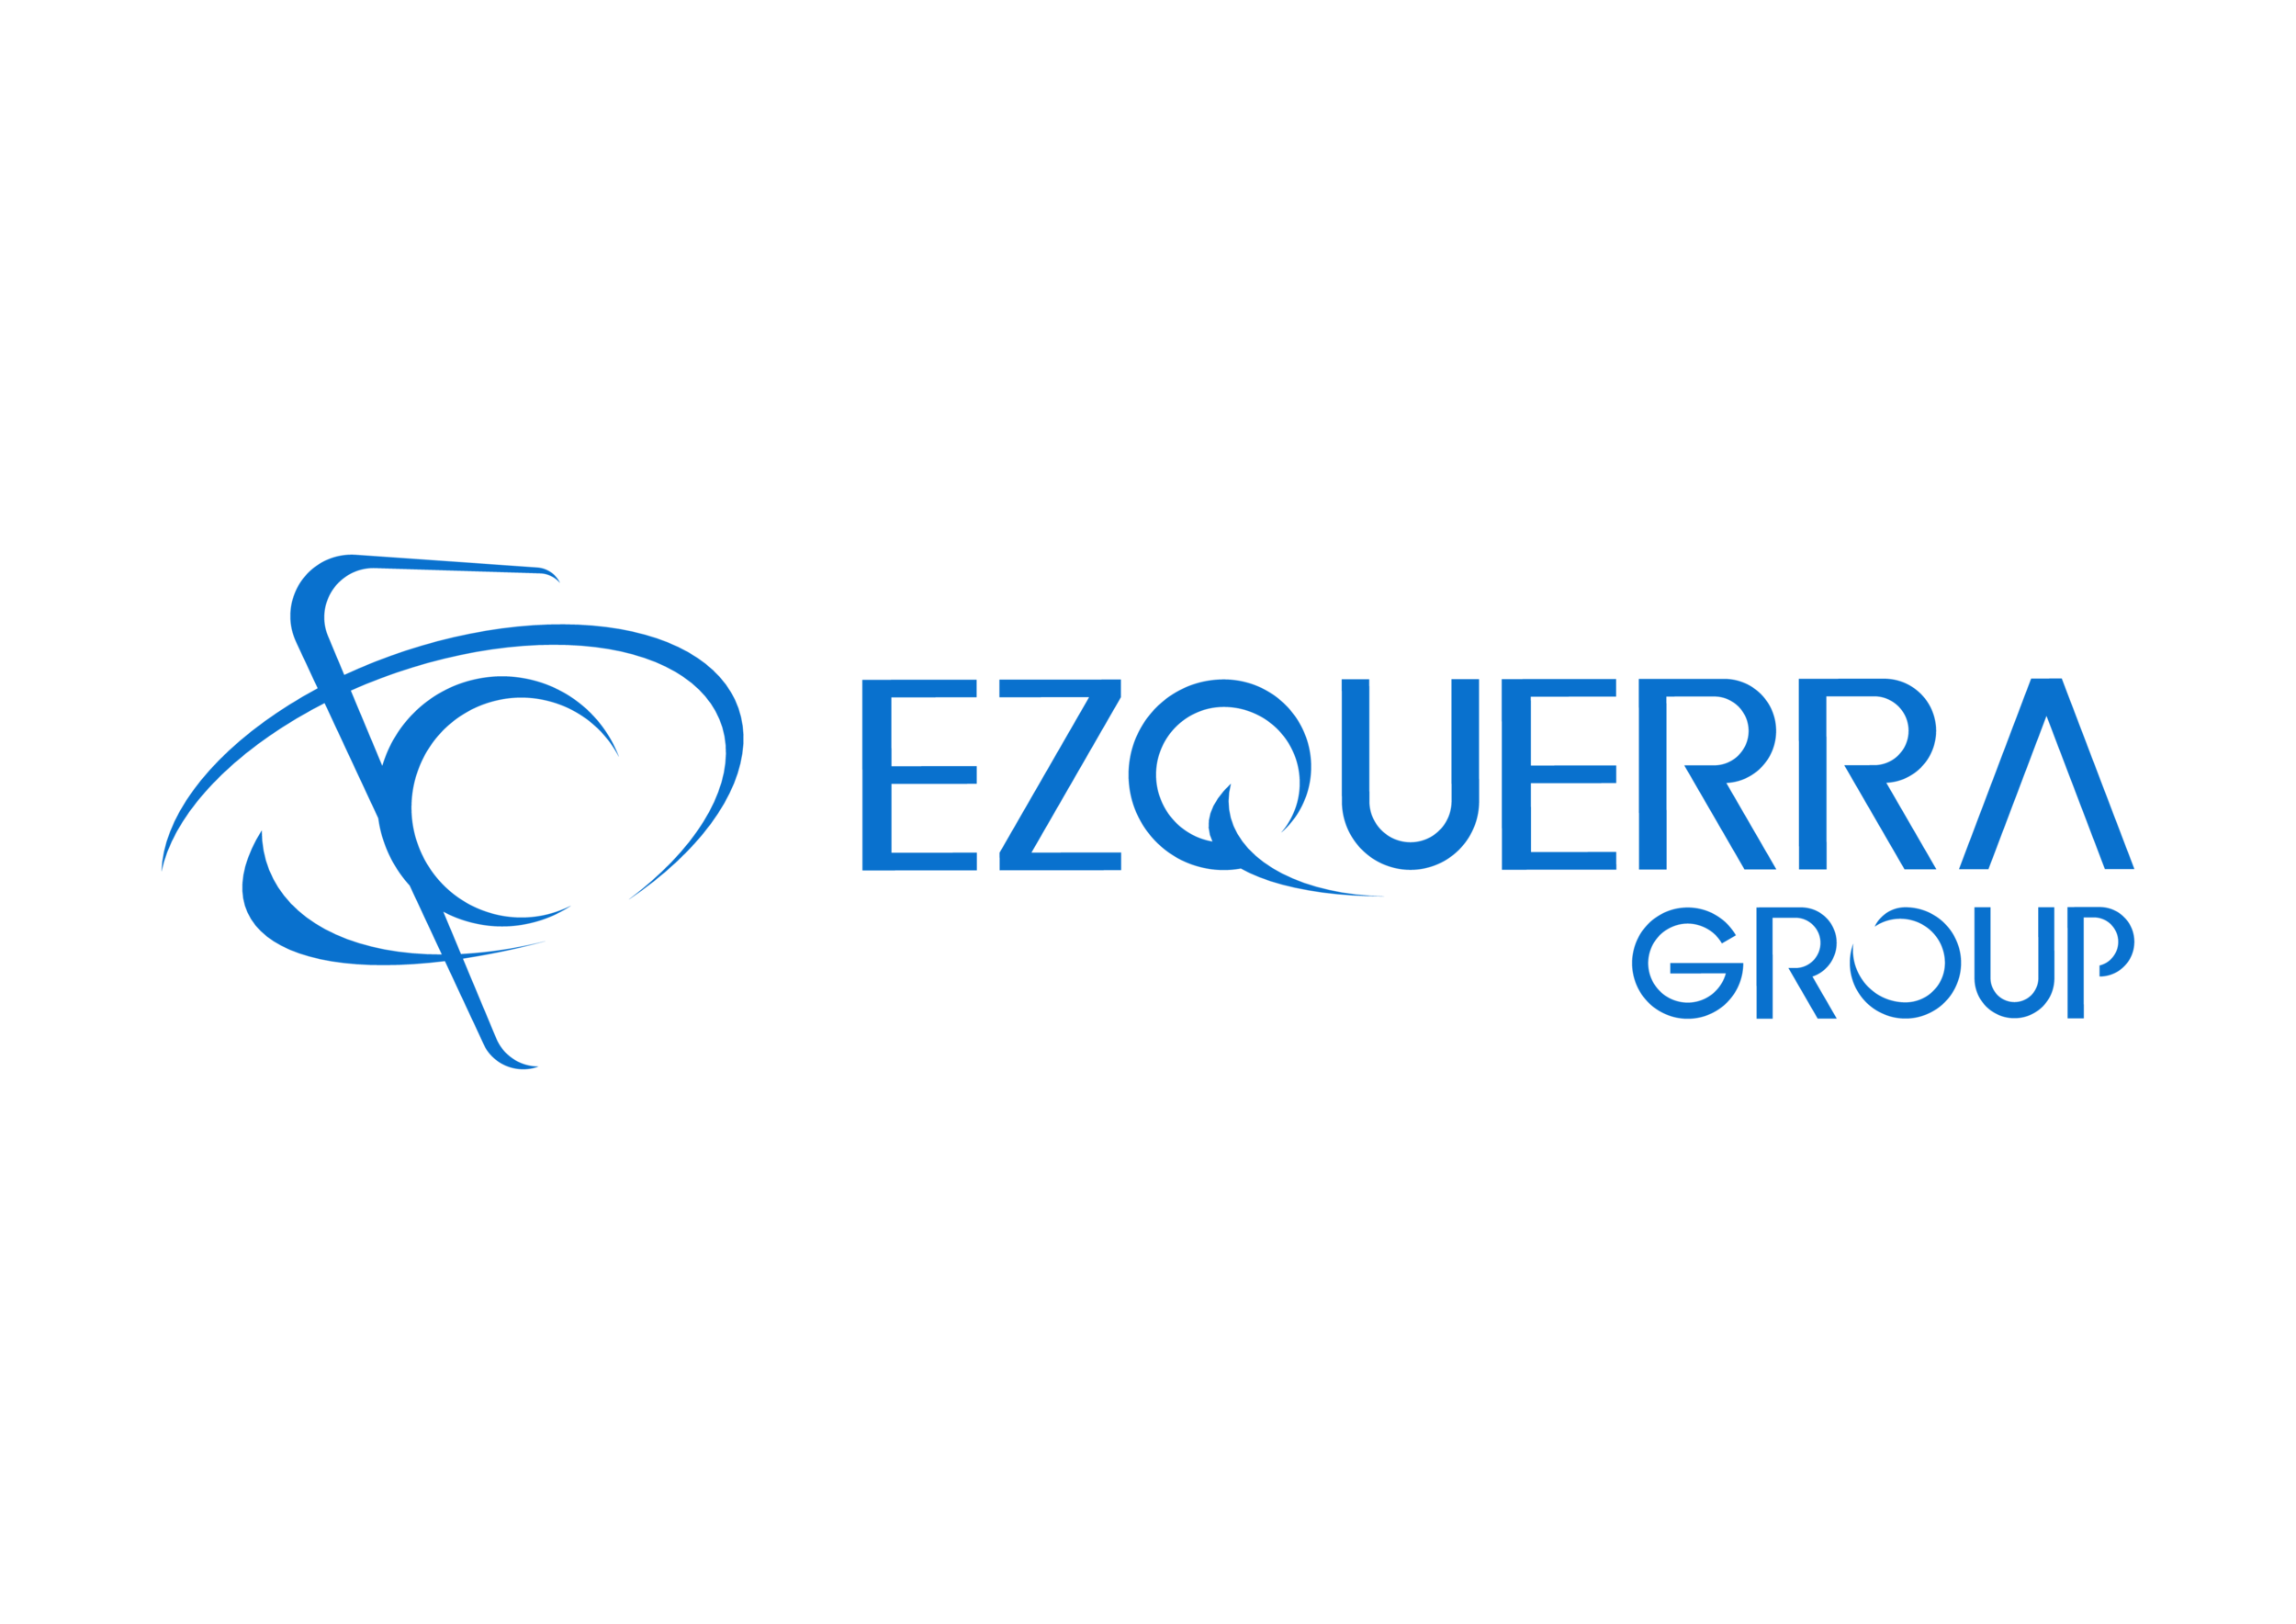 LOGO EZQUERRA GROUP.png